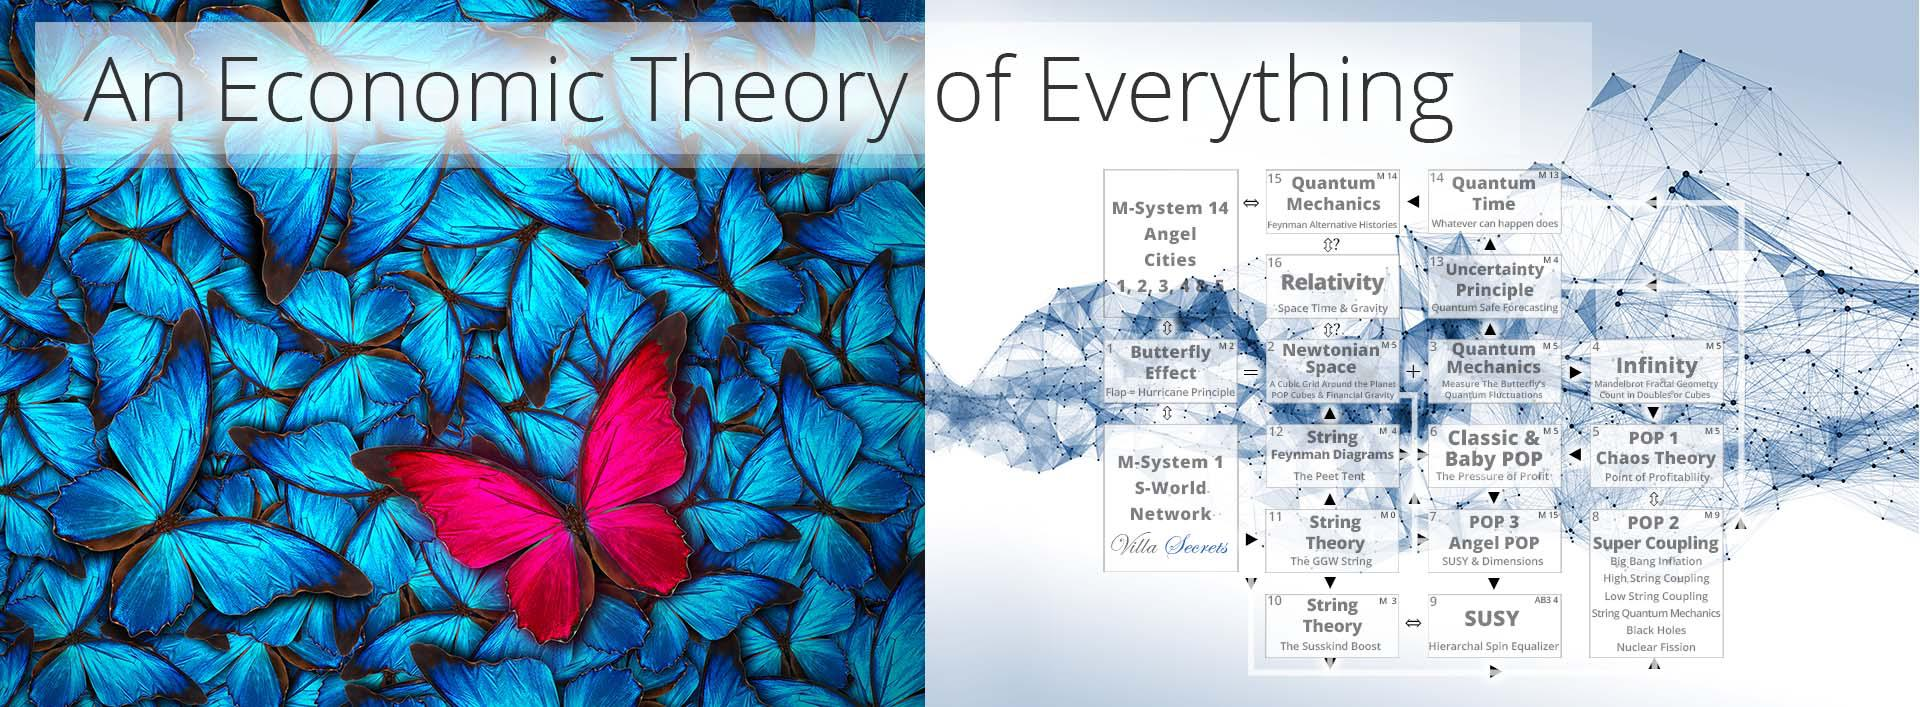 An Economic Theory of Everything - part 2